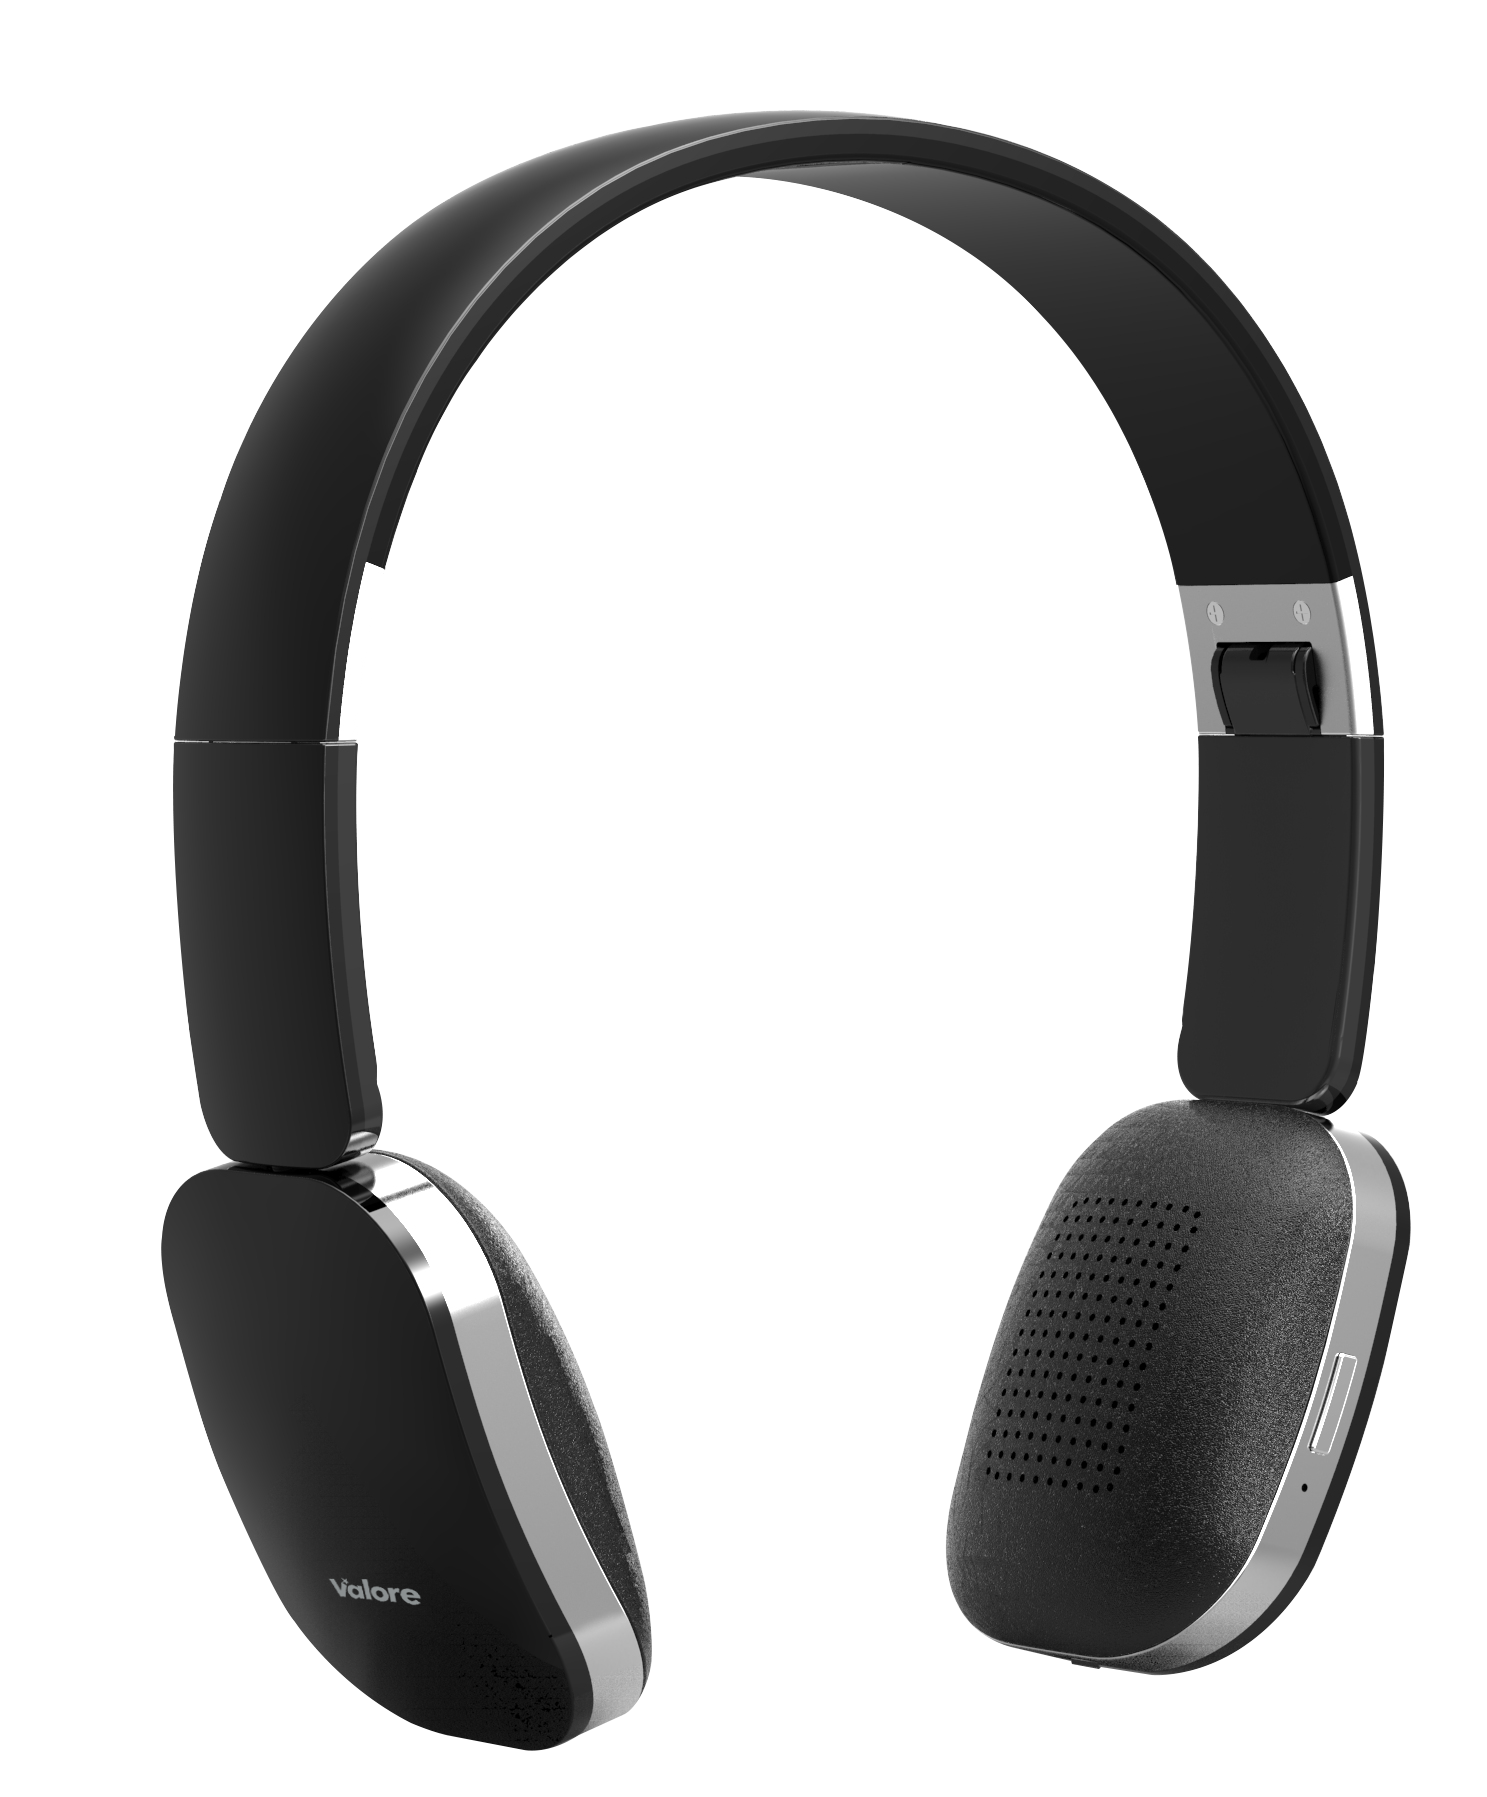 Gear Yourself With The Valore Bluetooth Headset And Experience High Quality Audio Wirelessly Everywhere You Go Bluetooth Headset Headset Over Ear Headphones